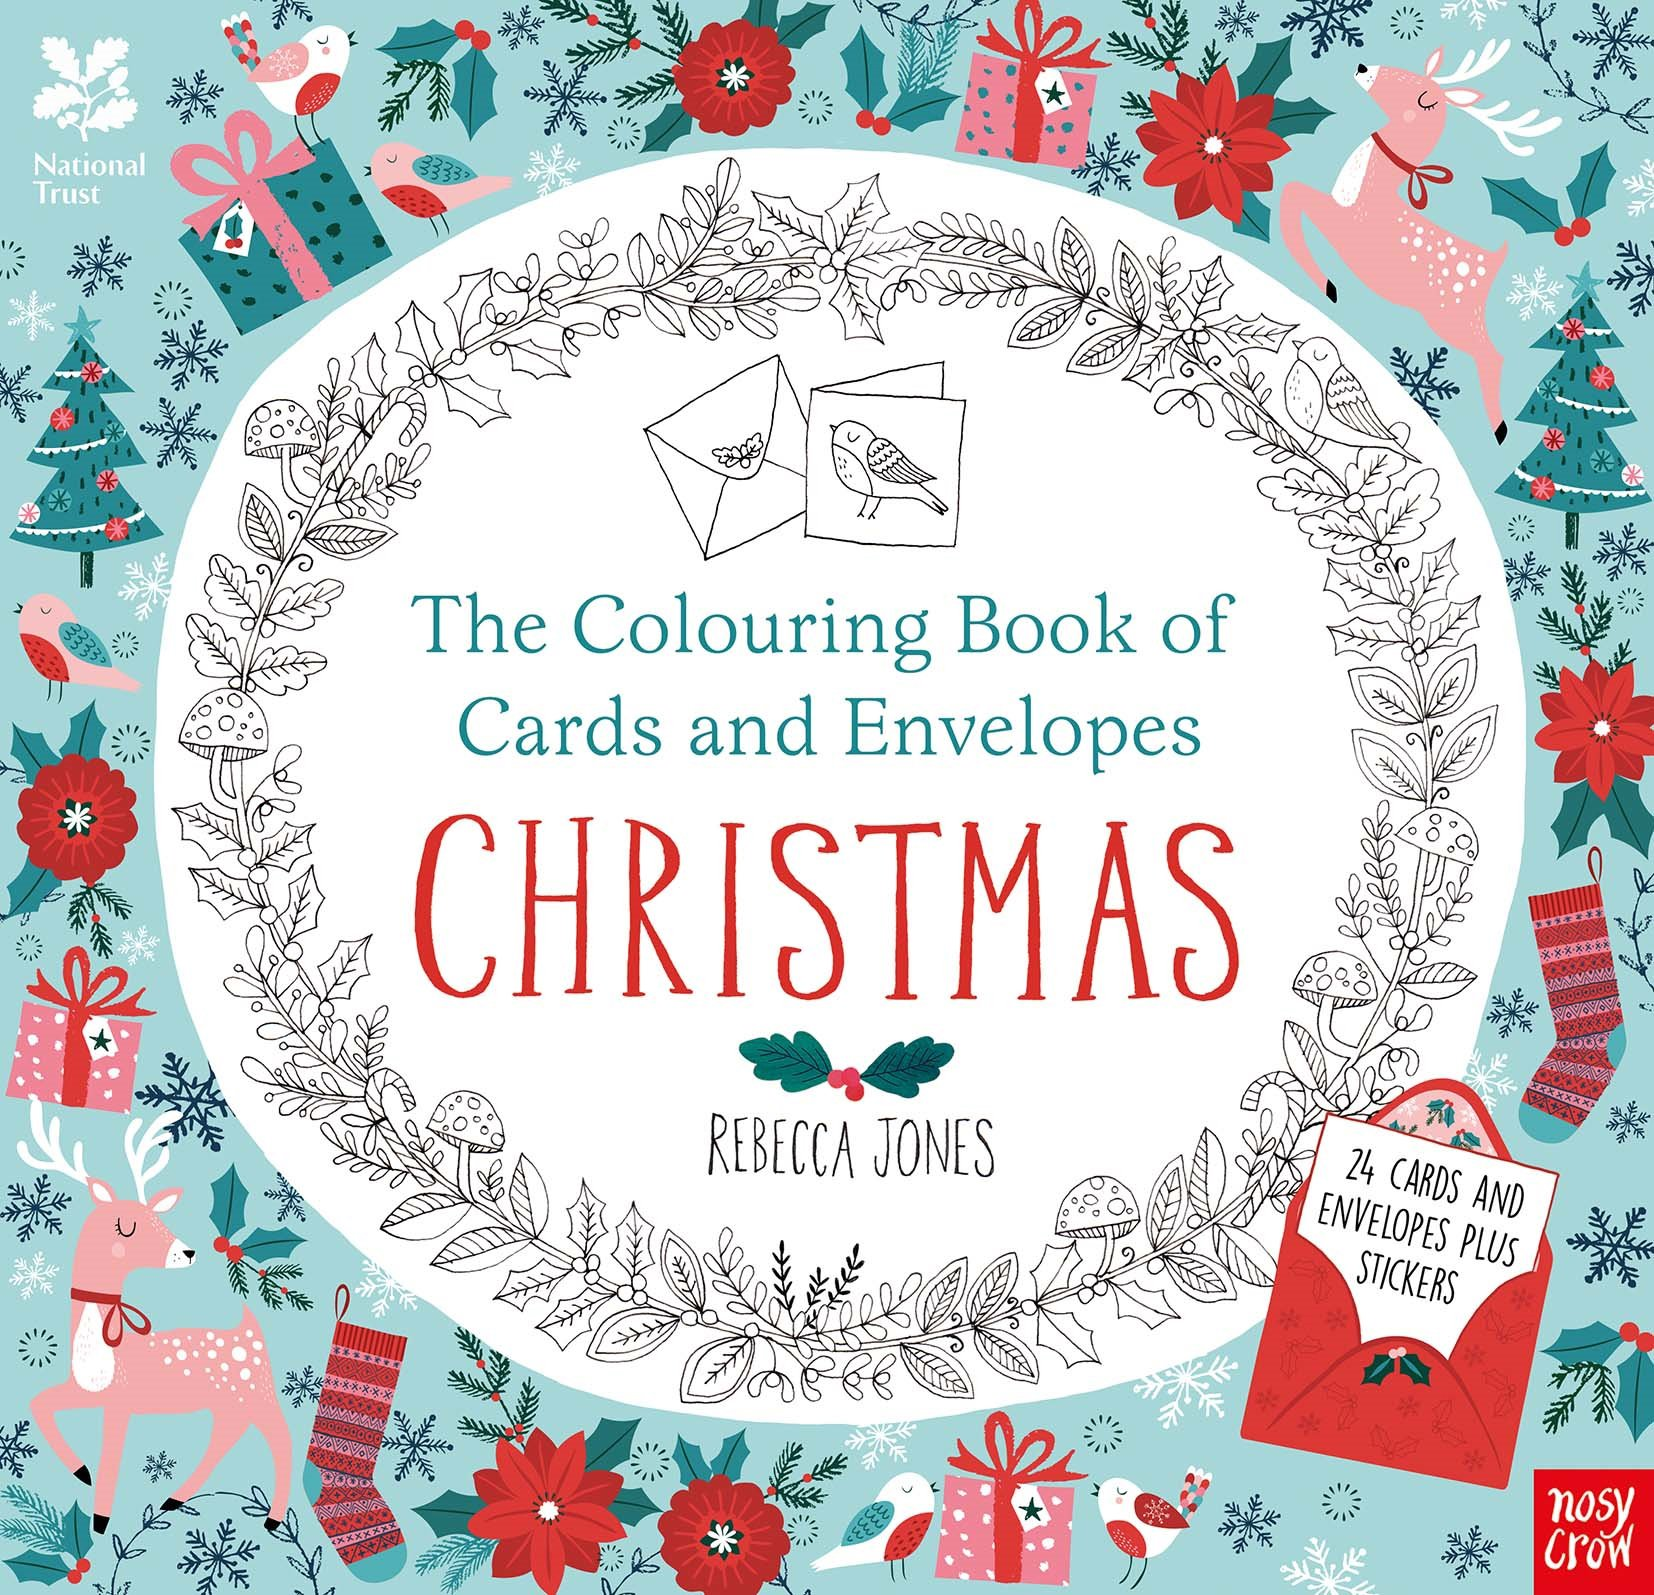 Read Online National Trust: The Colouring Book of Cards and Envelopes - Christmas (Colouring Books of Cards and Envelopes) pdf